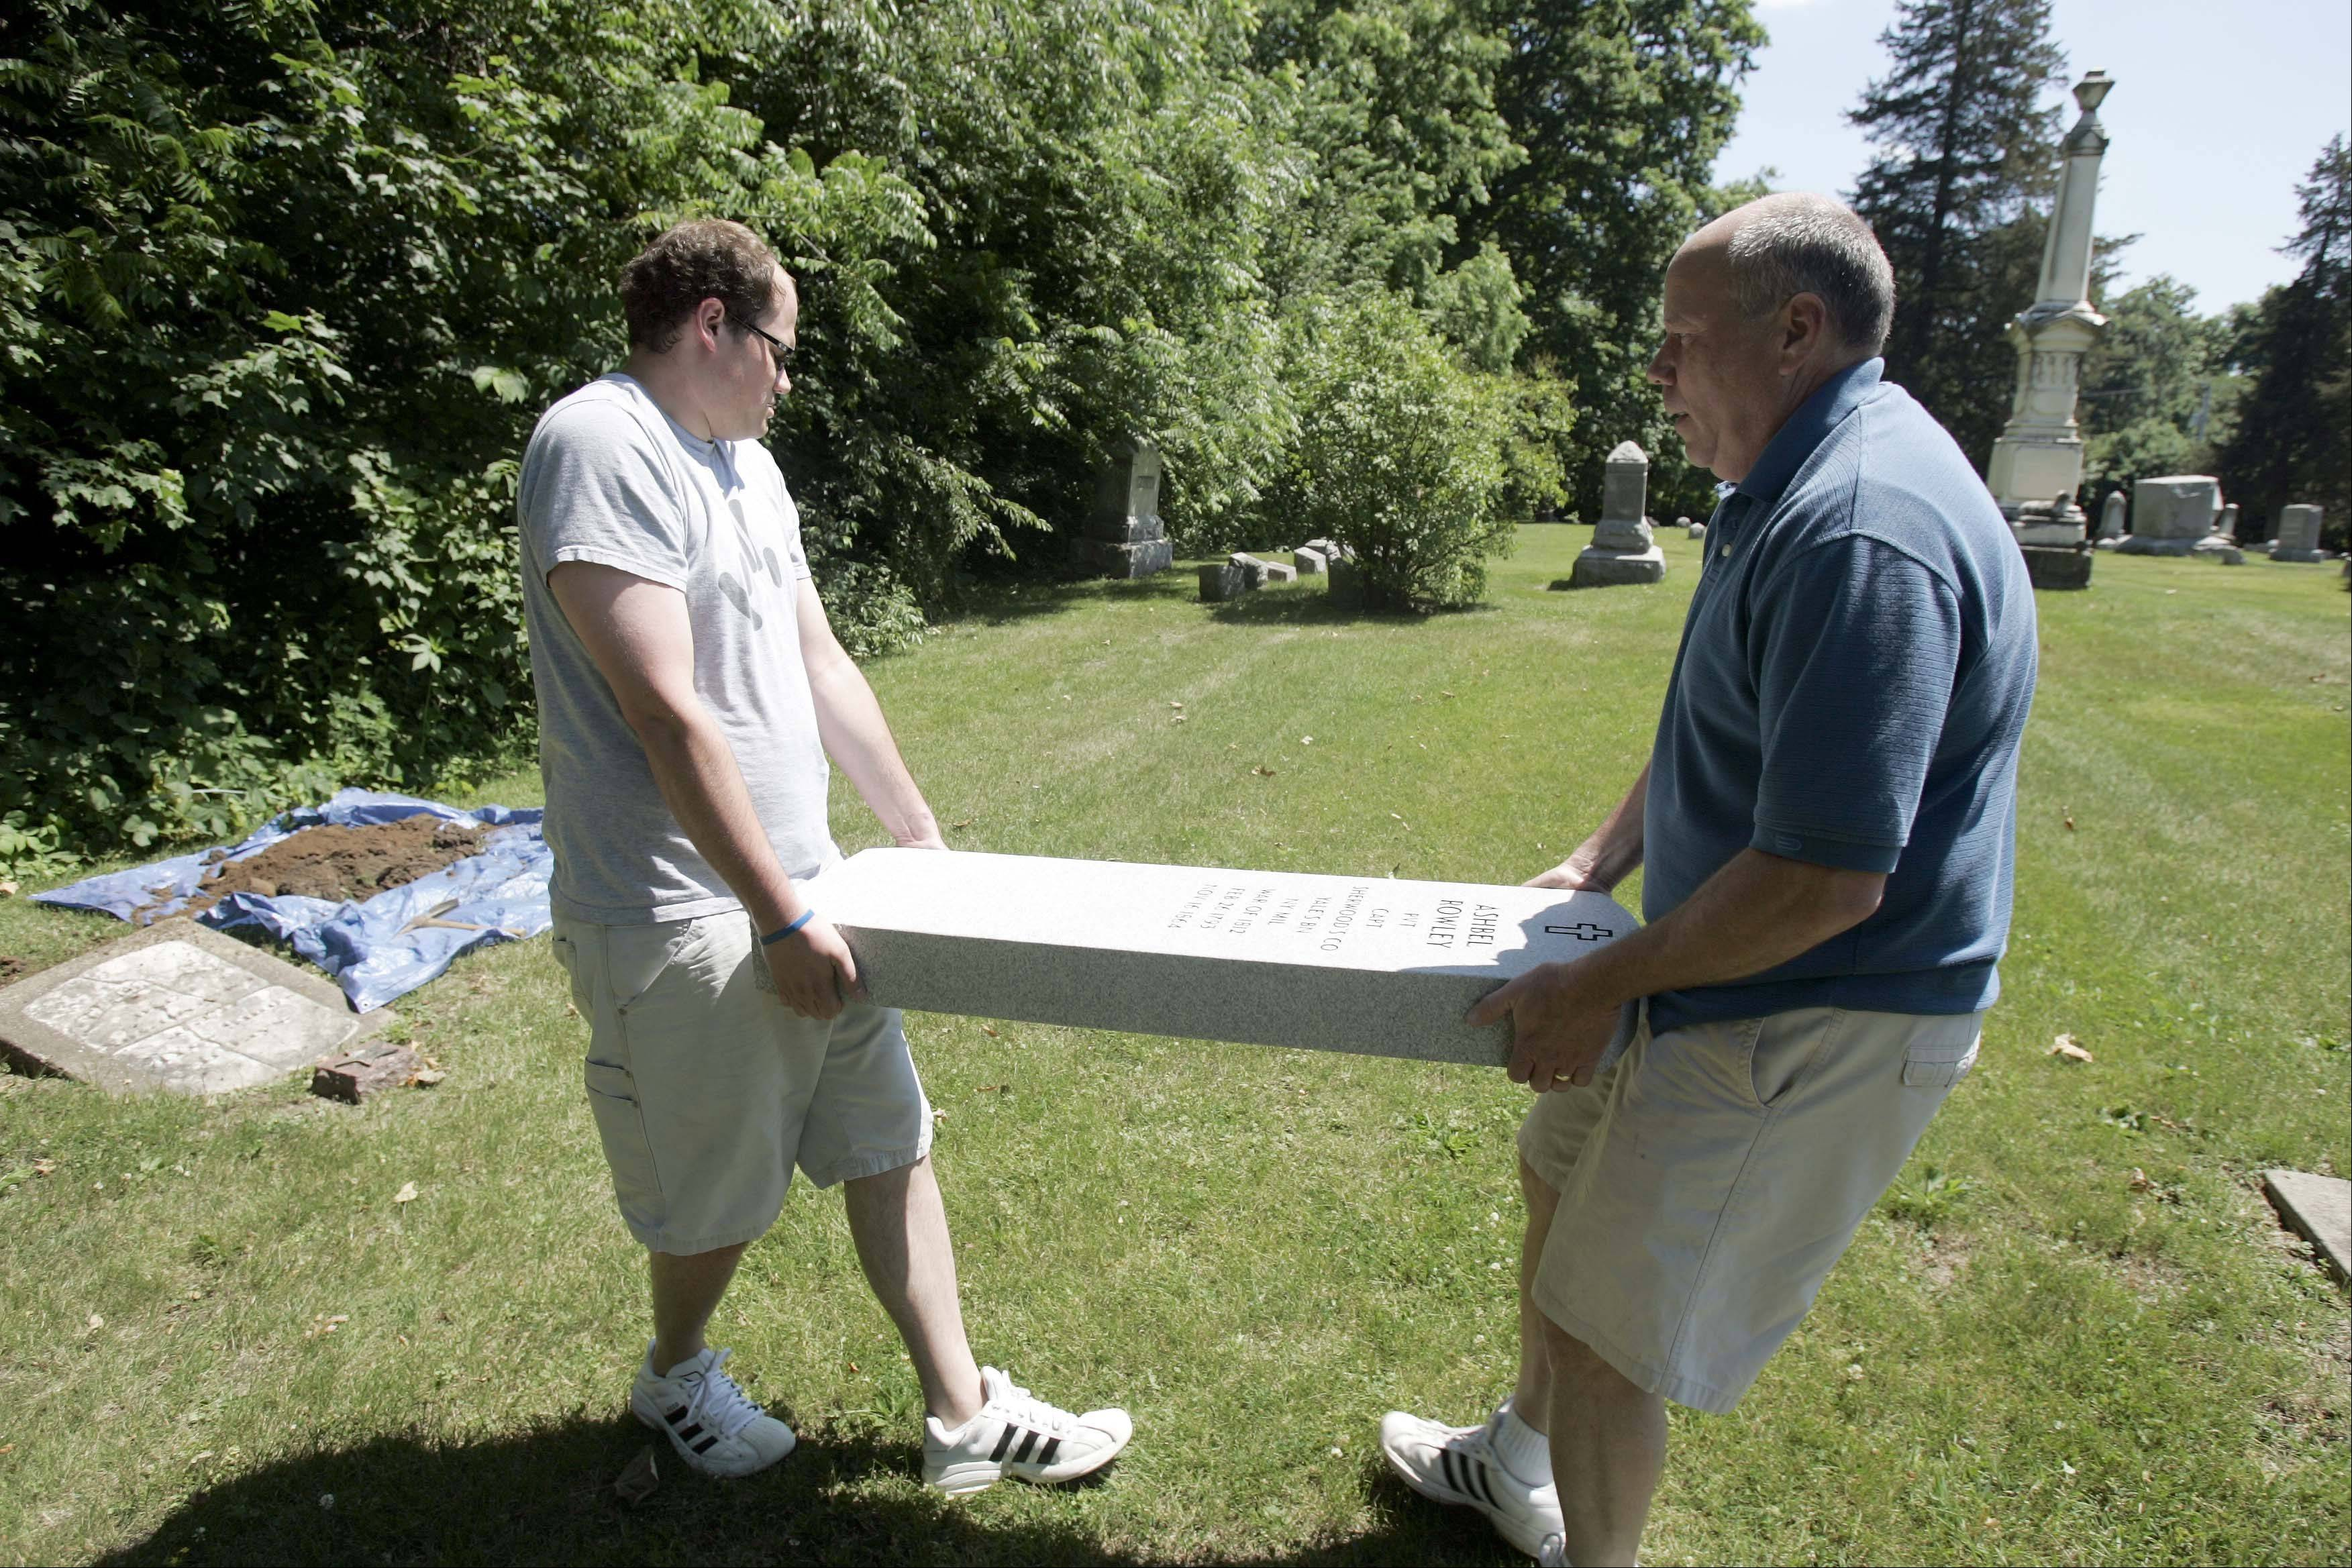 Mike Rowley, right, and his son, Tim, came from Iowa Thursday to replace the gravestone of an ancestor at the Sugar Grove Cemetery. Their third and fourth great grandfather Ashbel Rowley, respectively, was in the war of 1812. The 200th anniversary of the War of 1812 is June 18.